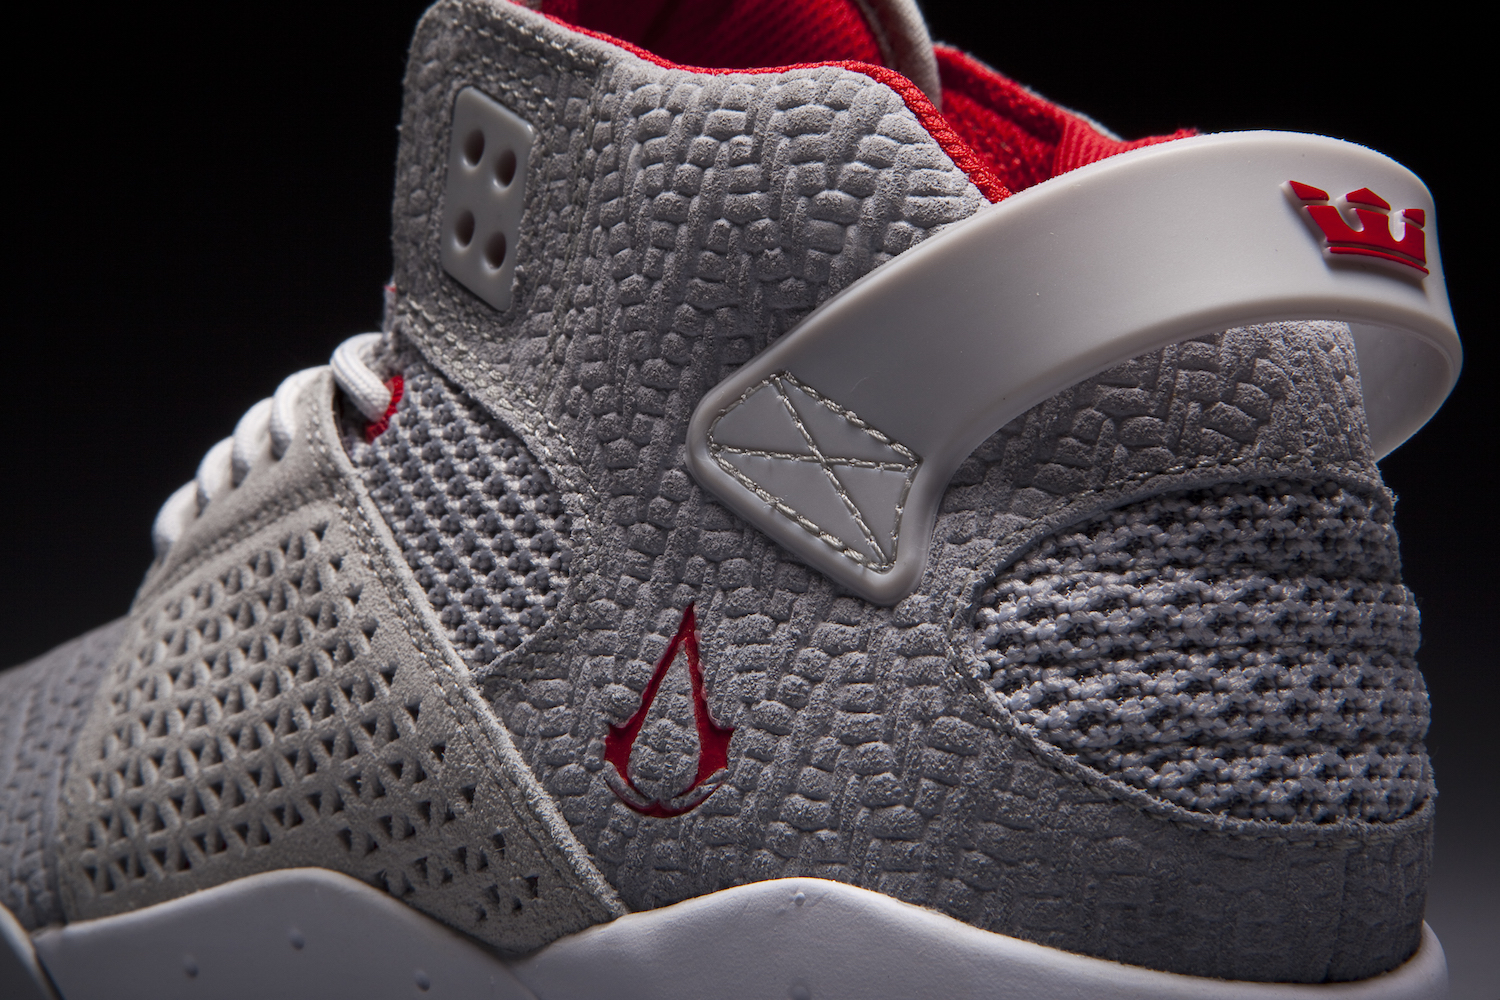 supra and assassins creed footwear collection 5